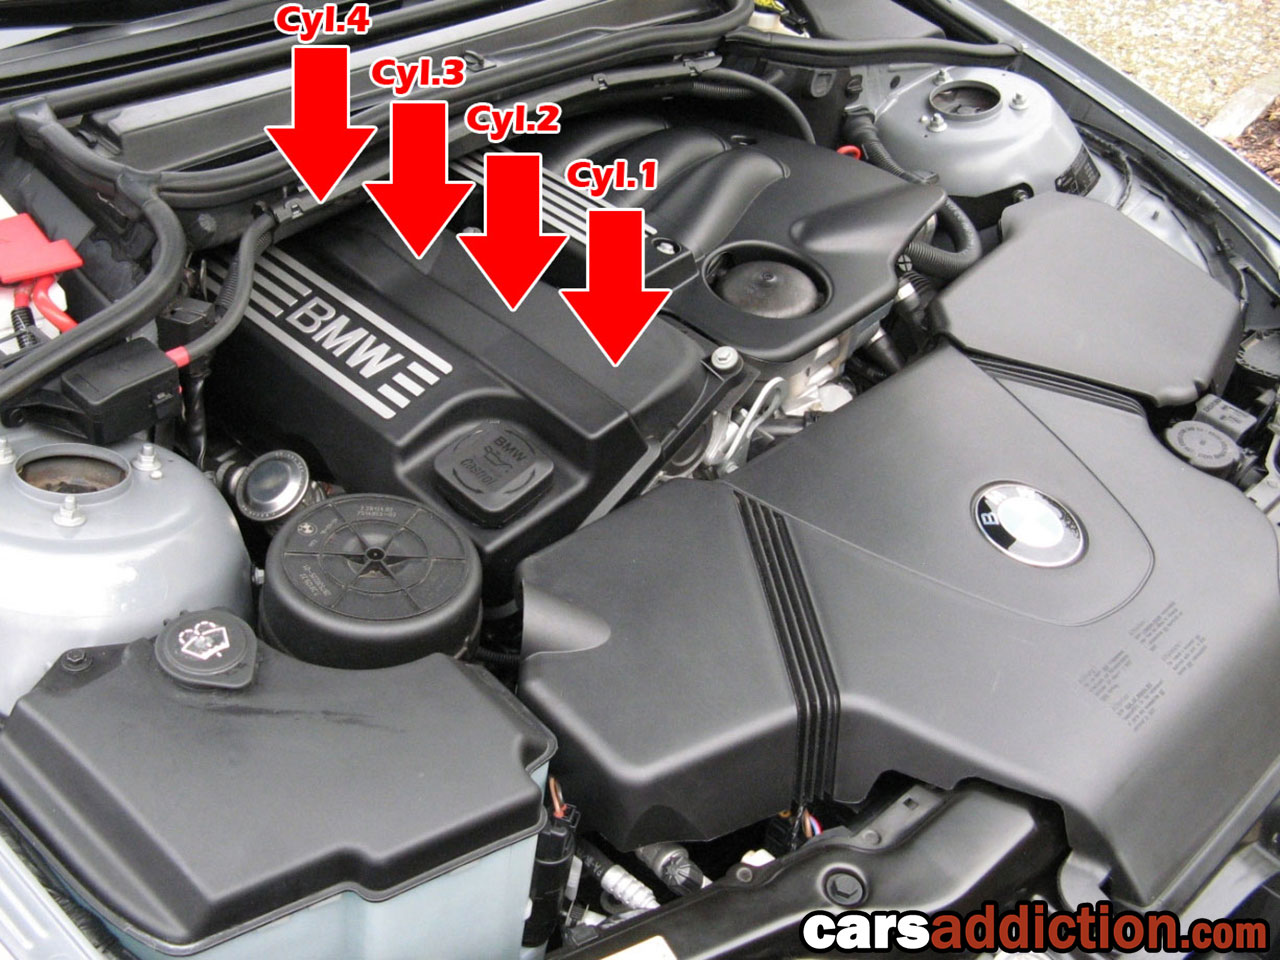 Bmw E46 Ignition Coil Replacement Carsaddiction Com